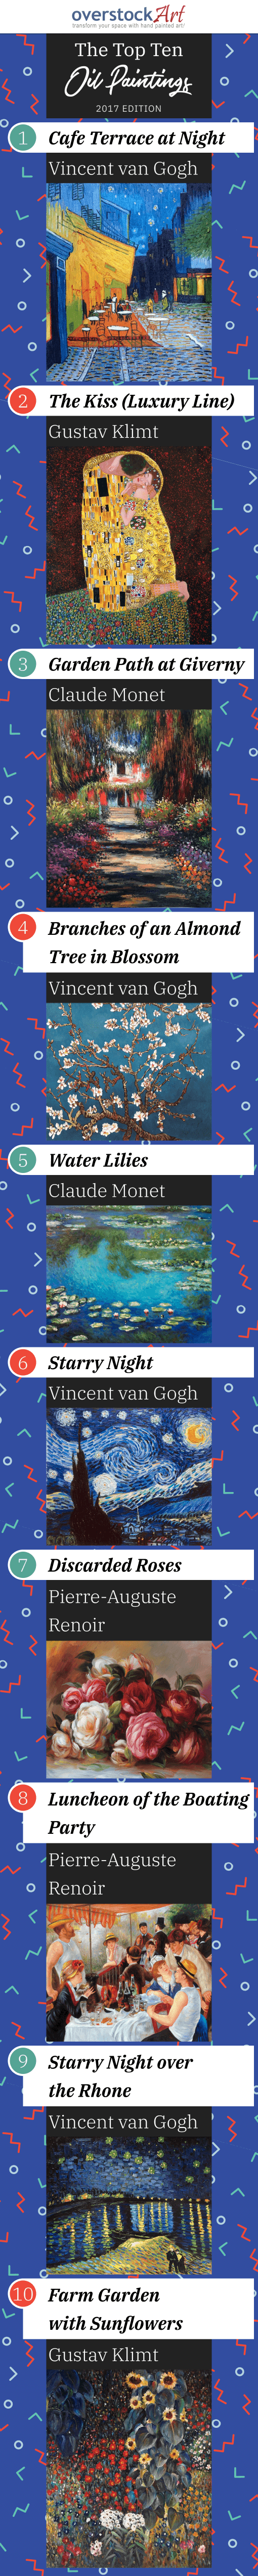 An infographic depicting the Top Ten Oil Paintings for 2017, featuring artworks by van Gogh, Monet, Renoir, and more.